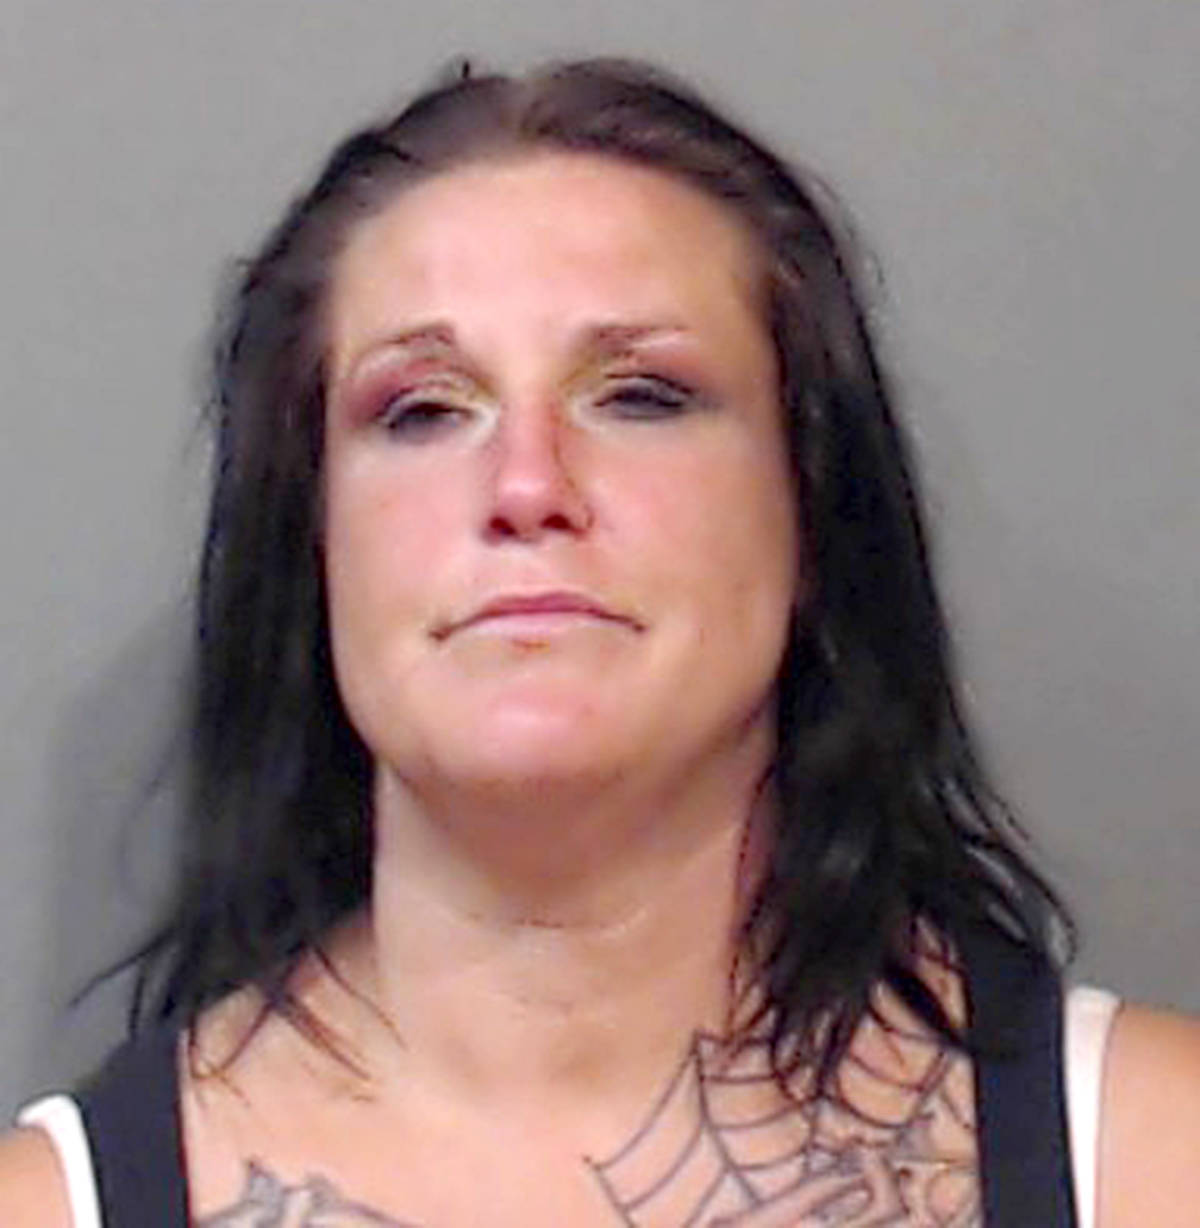 SKIMMING, Jacqueline Age: 40 Height: 5 ft. 8 in. Weight: 153 lbs. Hair: Brown Eyes: Brown Wanted: Theft of motor vehicle, criminal harassment, assault, break and enter, and (MVA) drive while prohibited. Warrant in effect: Aug. 10, 2021 Parole Jurisdiction: Chilliwack, B.C.